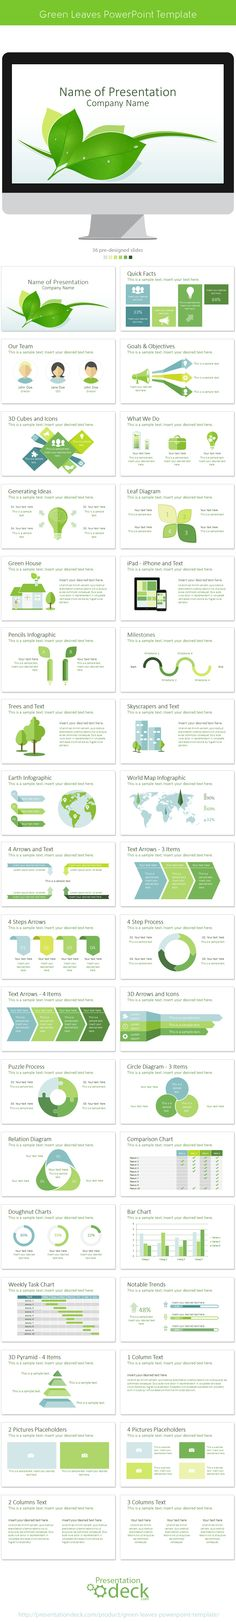 133 Best Powerpoint Templates images Microsoft office, Info